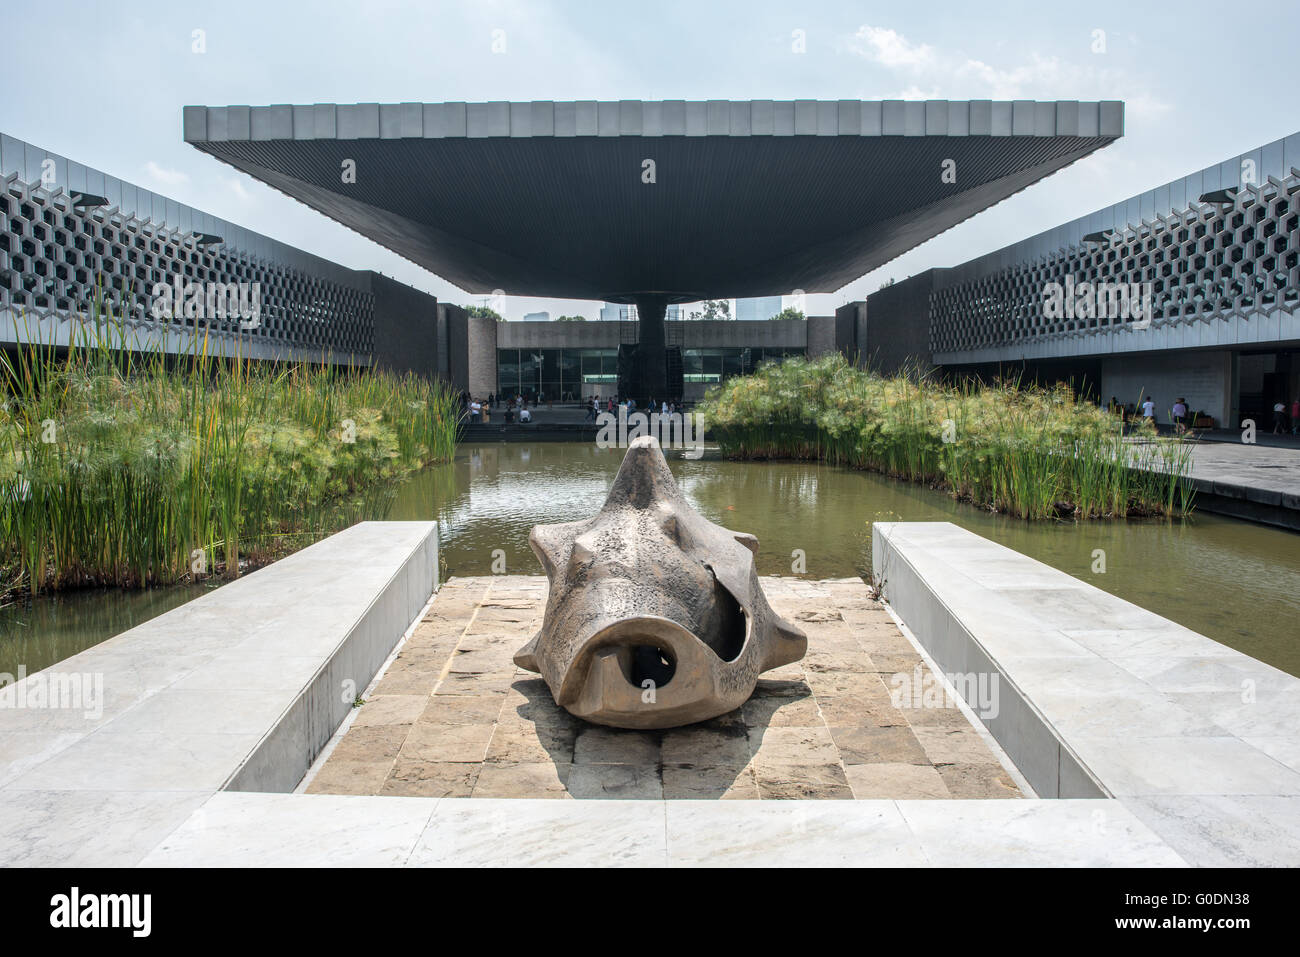 MEXICO CITY, MEXICO--A large concrete umbrella covers part of the central courtyard of the National Museum of Anthropology - Stock Image